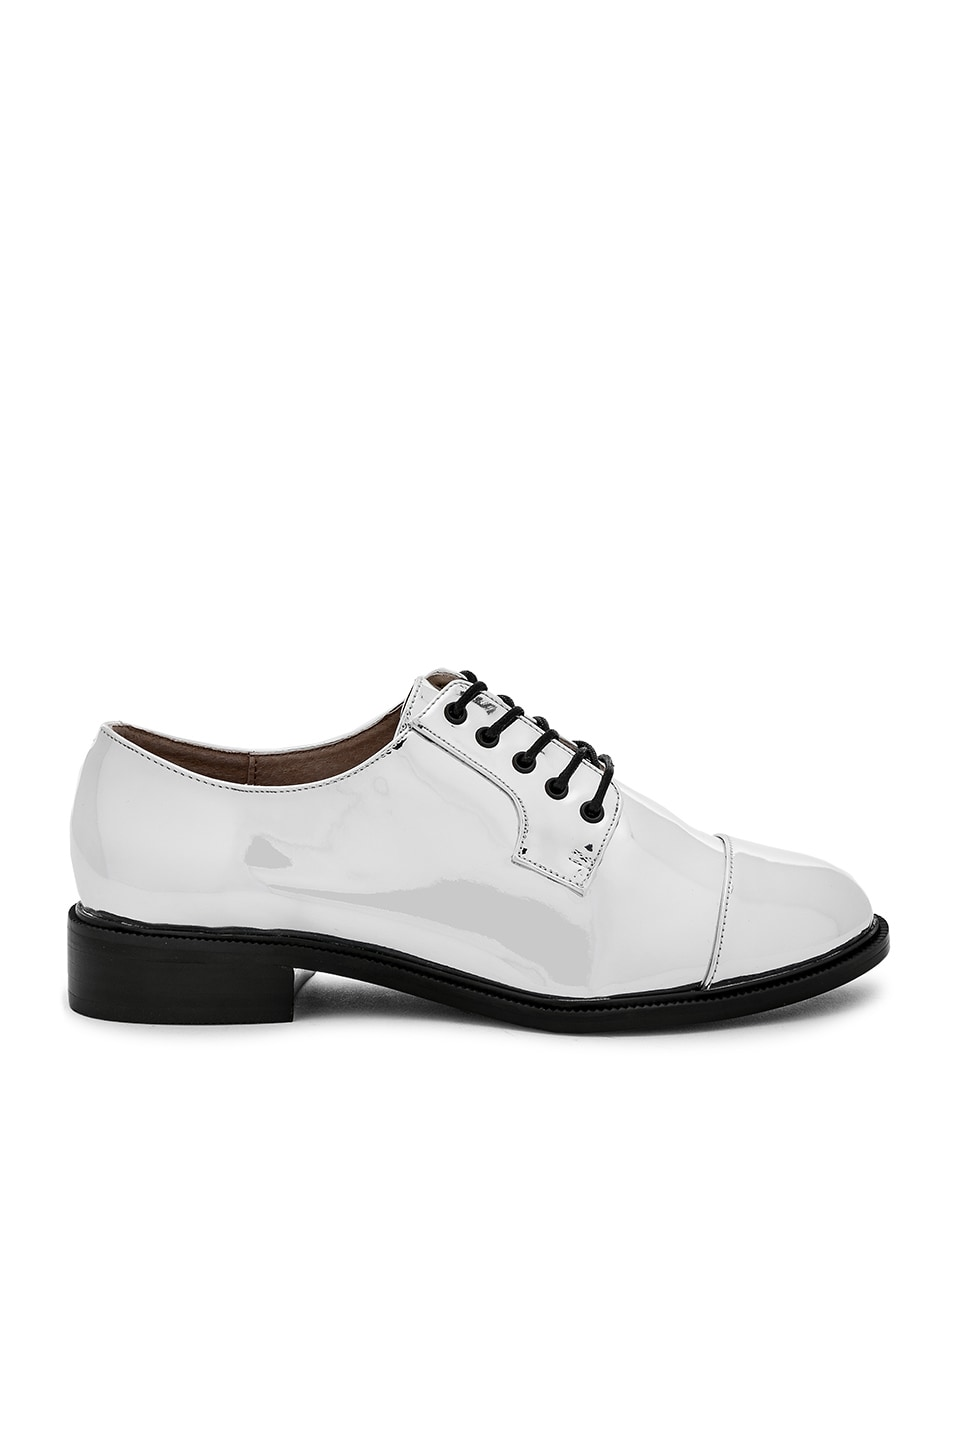 RAYE x House Of Harlow 1960 Kane Oxford in Silver